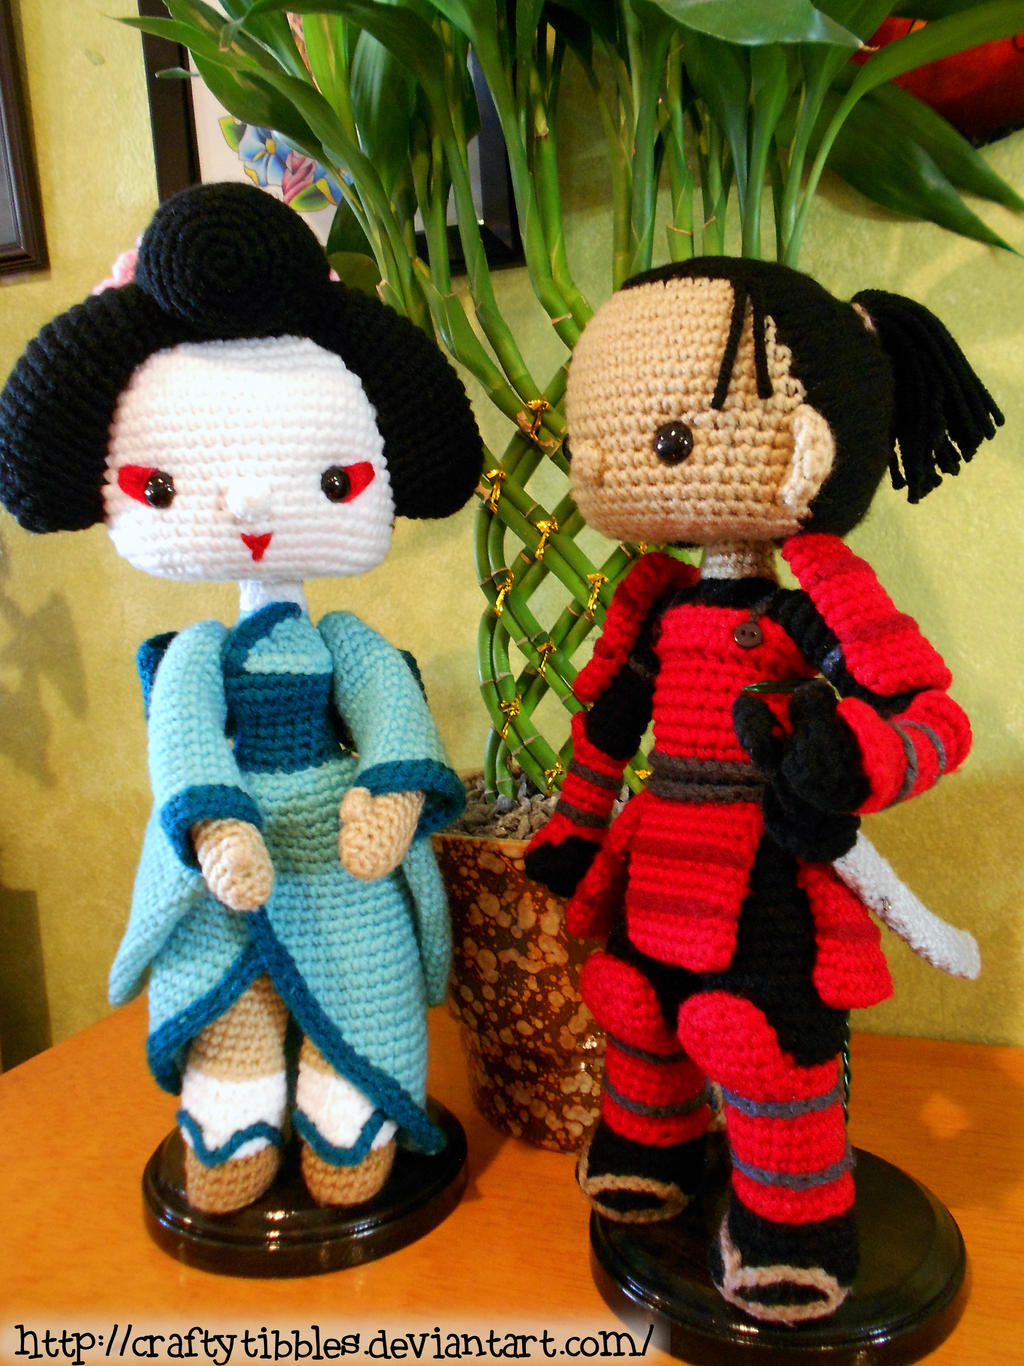 Geisha and Samurai by CraftyTibbles